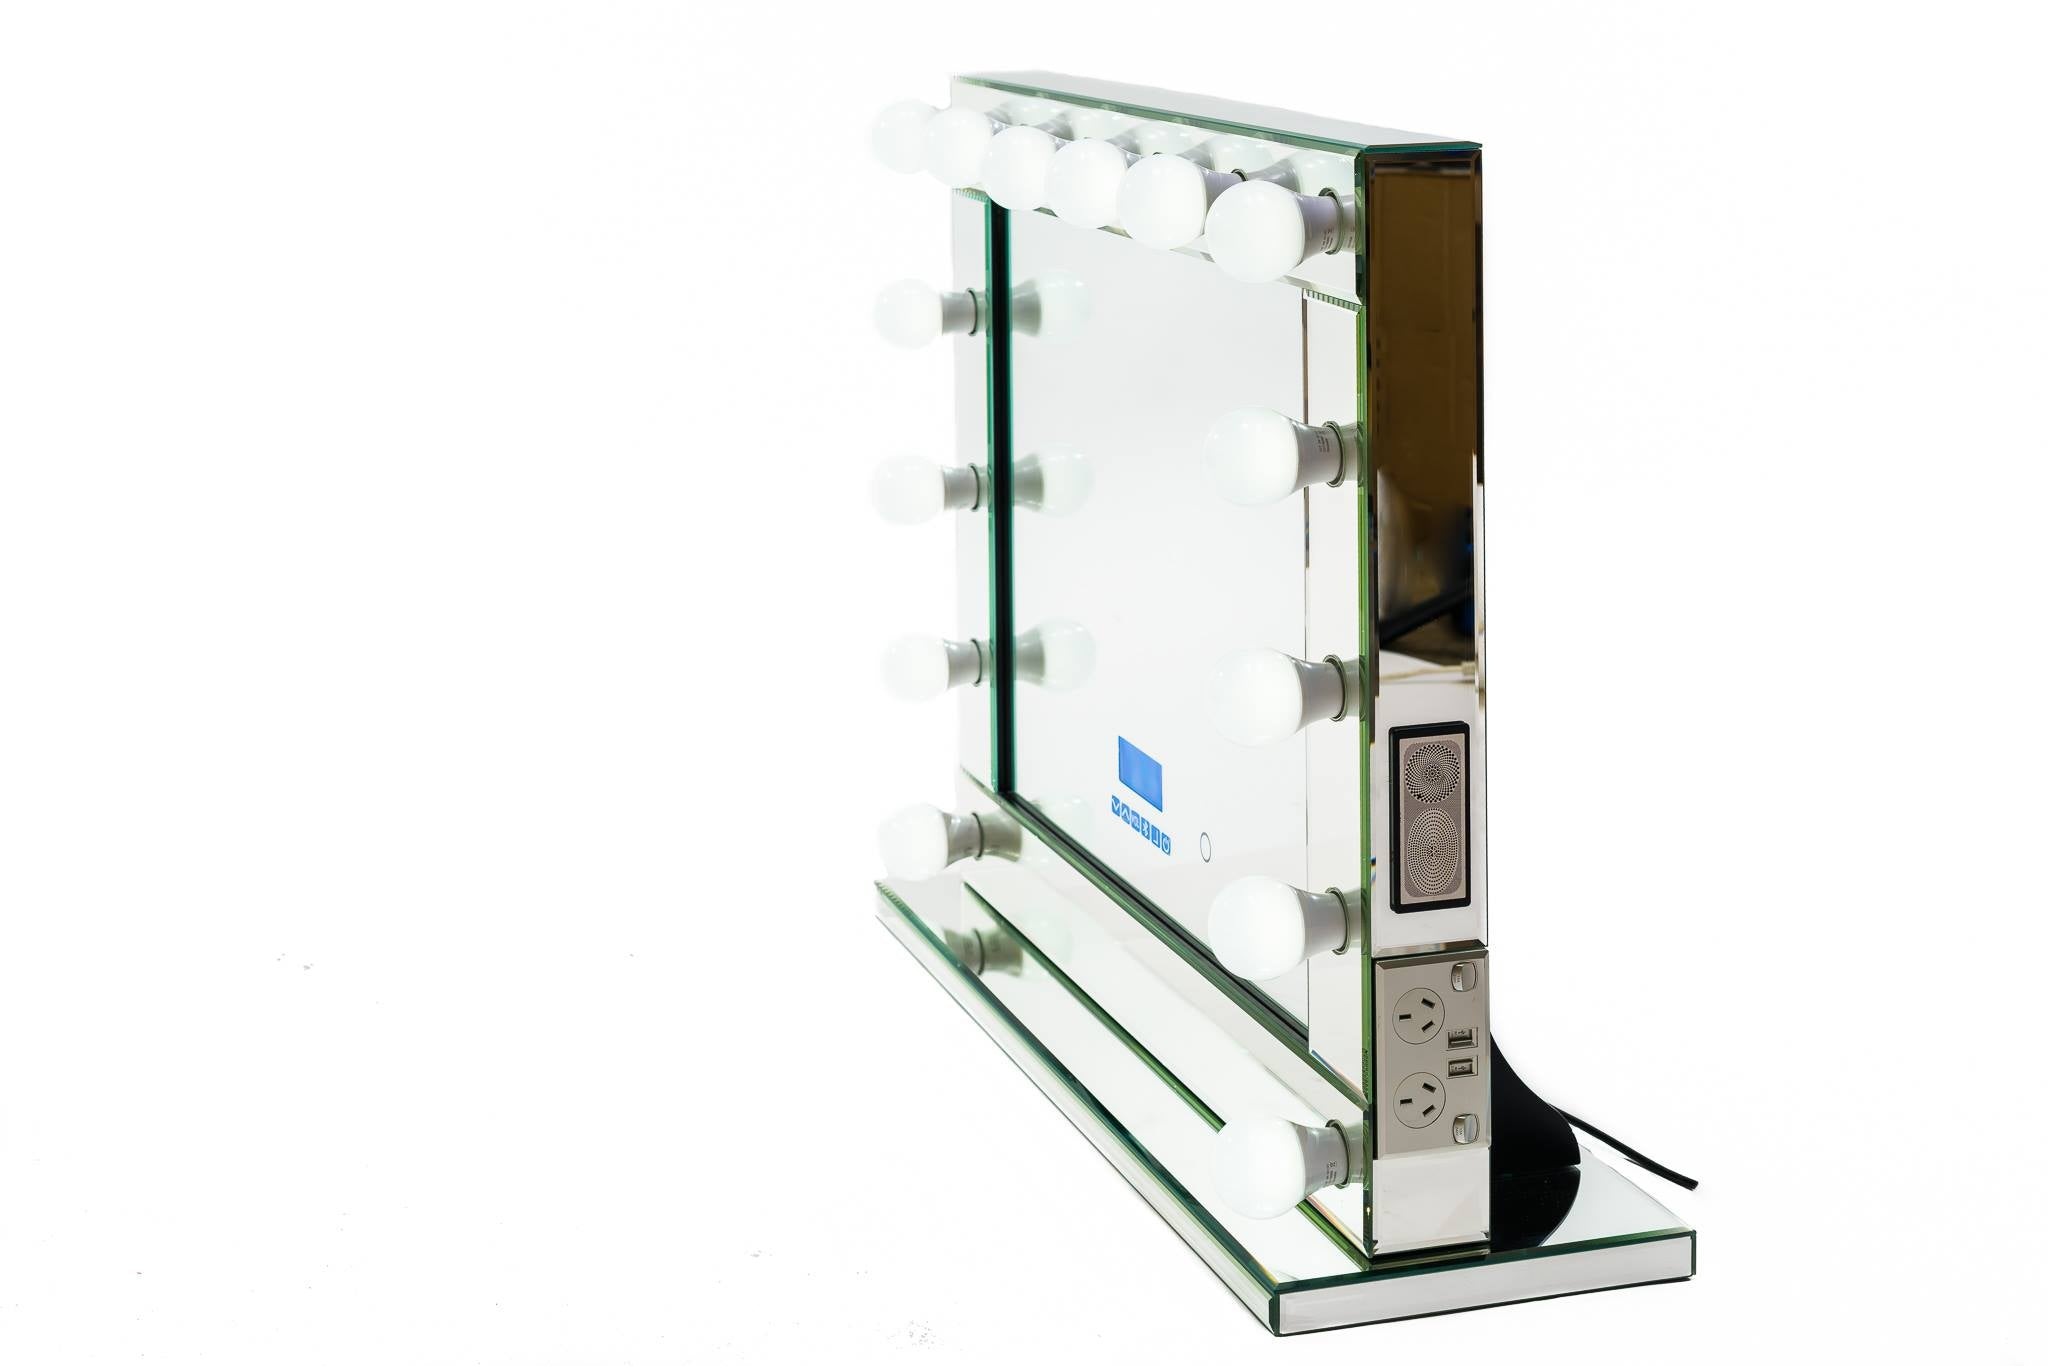 Hollywood Mirror Extra Large with Bluetooth Speakers, Sensor Dimmer,USB,Power Points-LIMITED STOCK LEFT